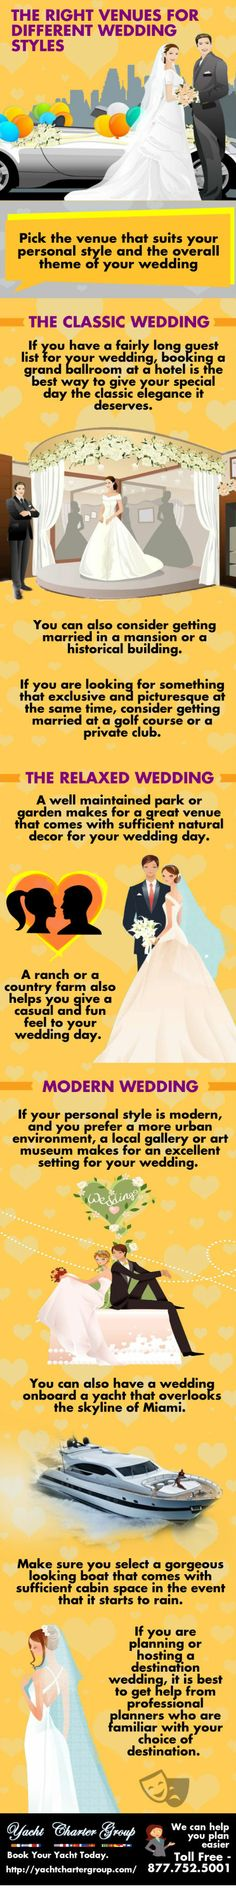 THE RIGHT VENUES FOR DIFFERENT WEDDING STYLES Get more ideas to choose right venues for your weddingvisit: http://yachtchartergroup.com/